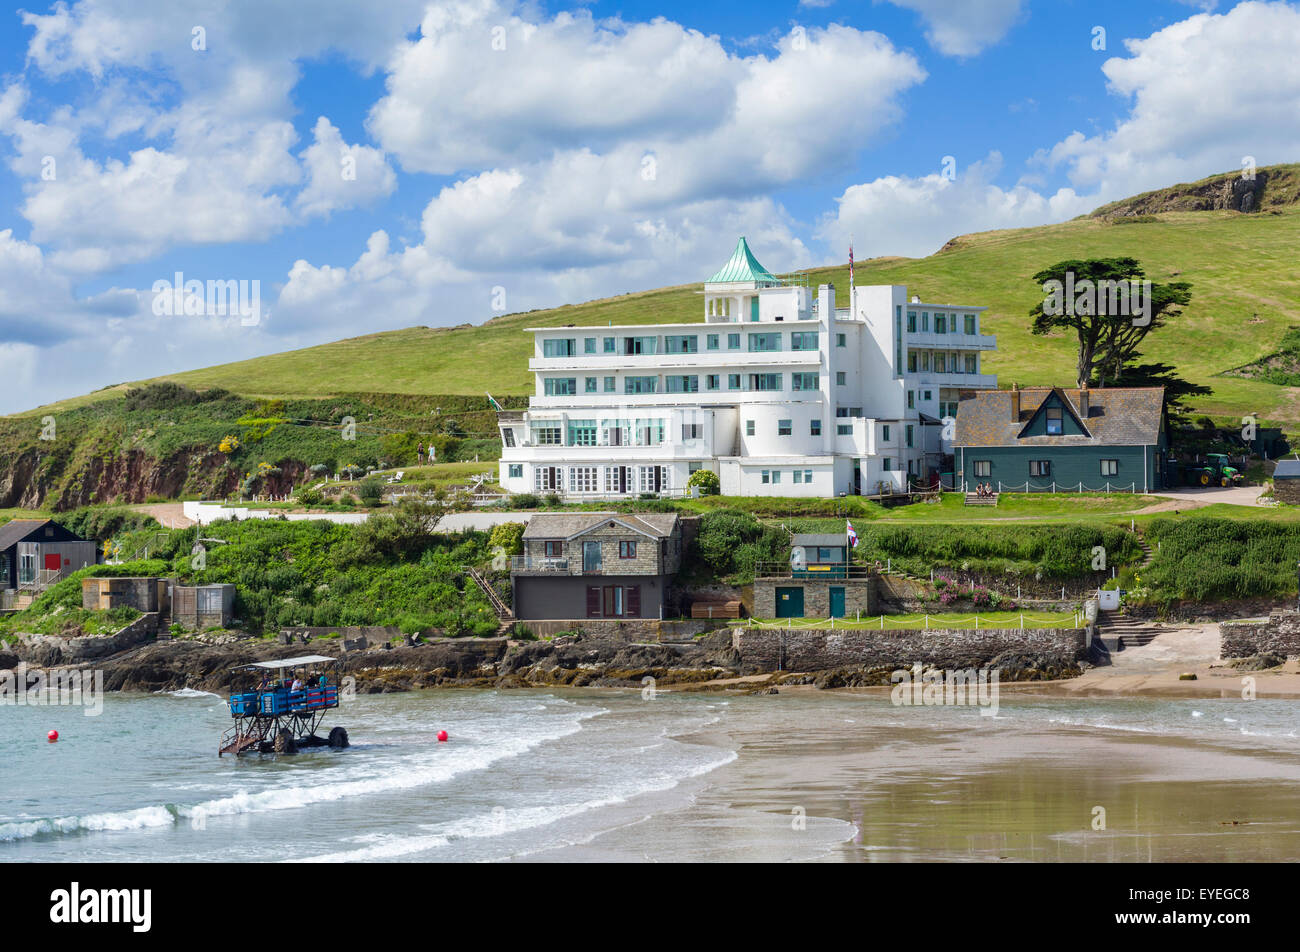 Burgh Island Hotel With Sea Tractor Used To Cross At High